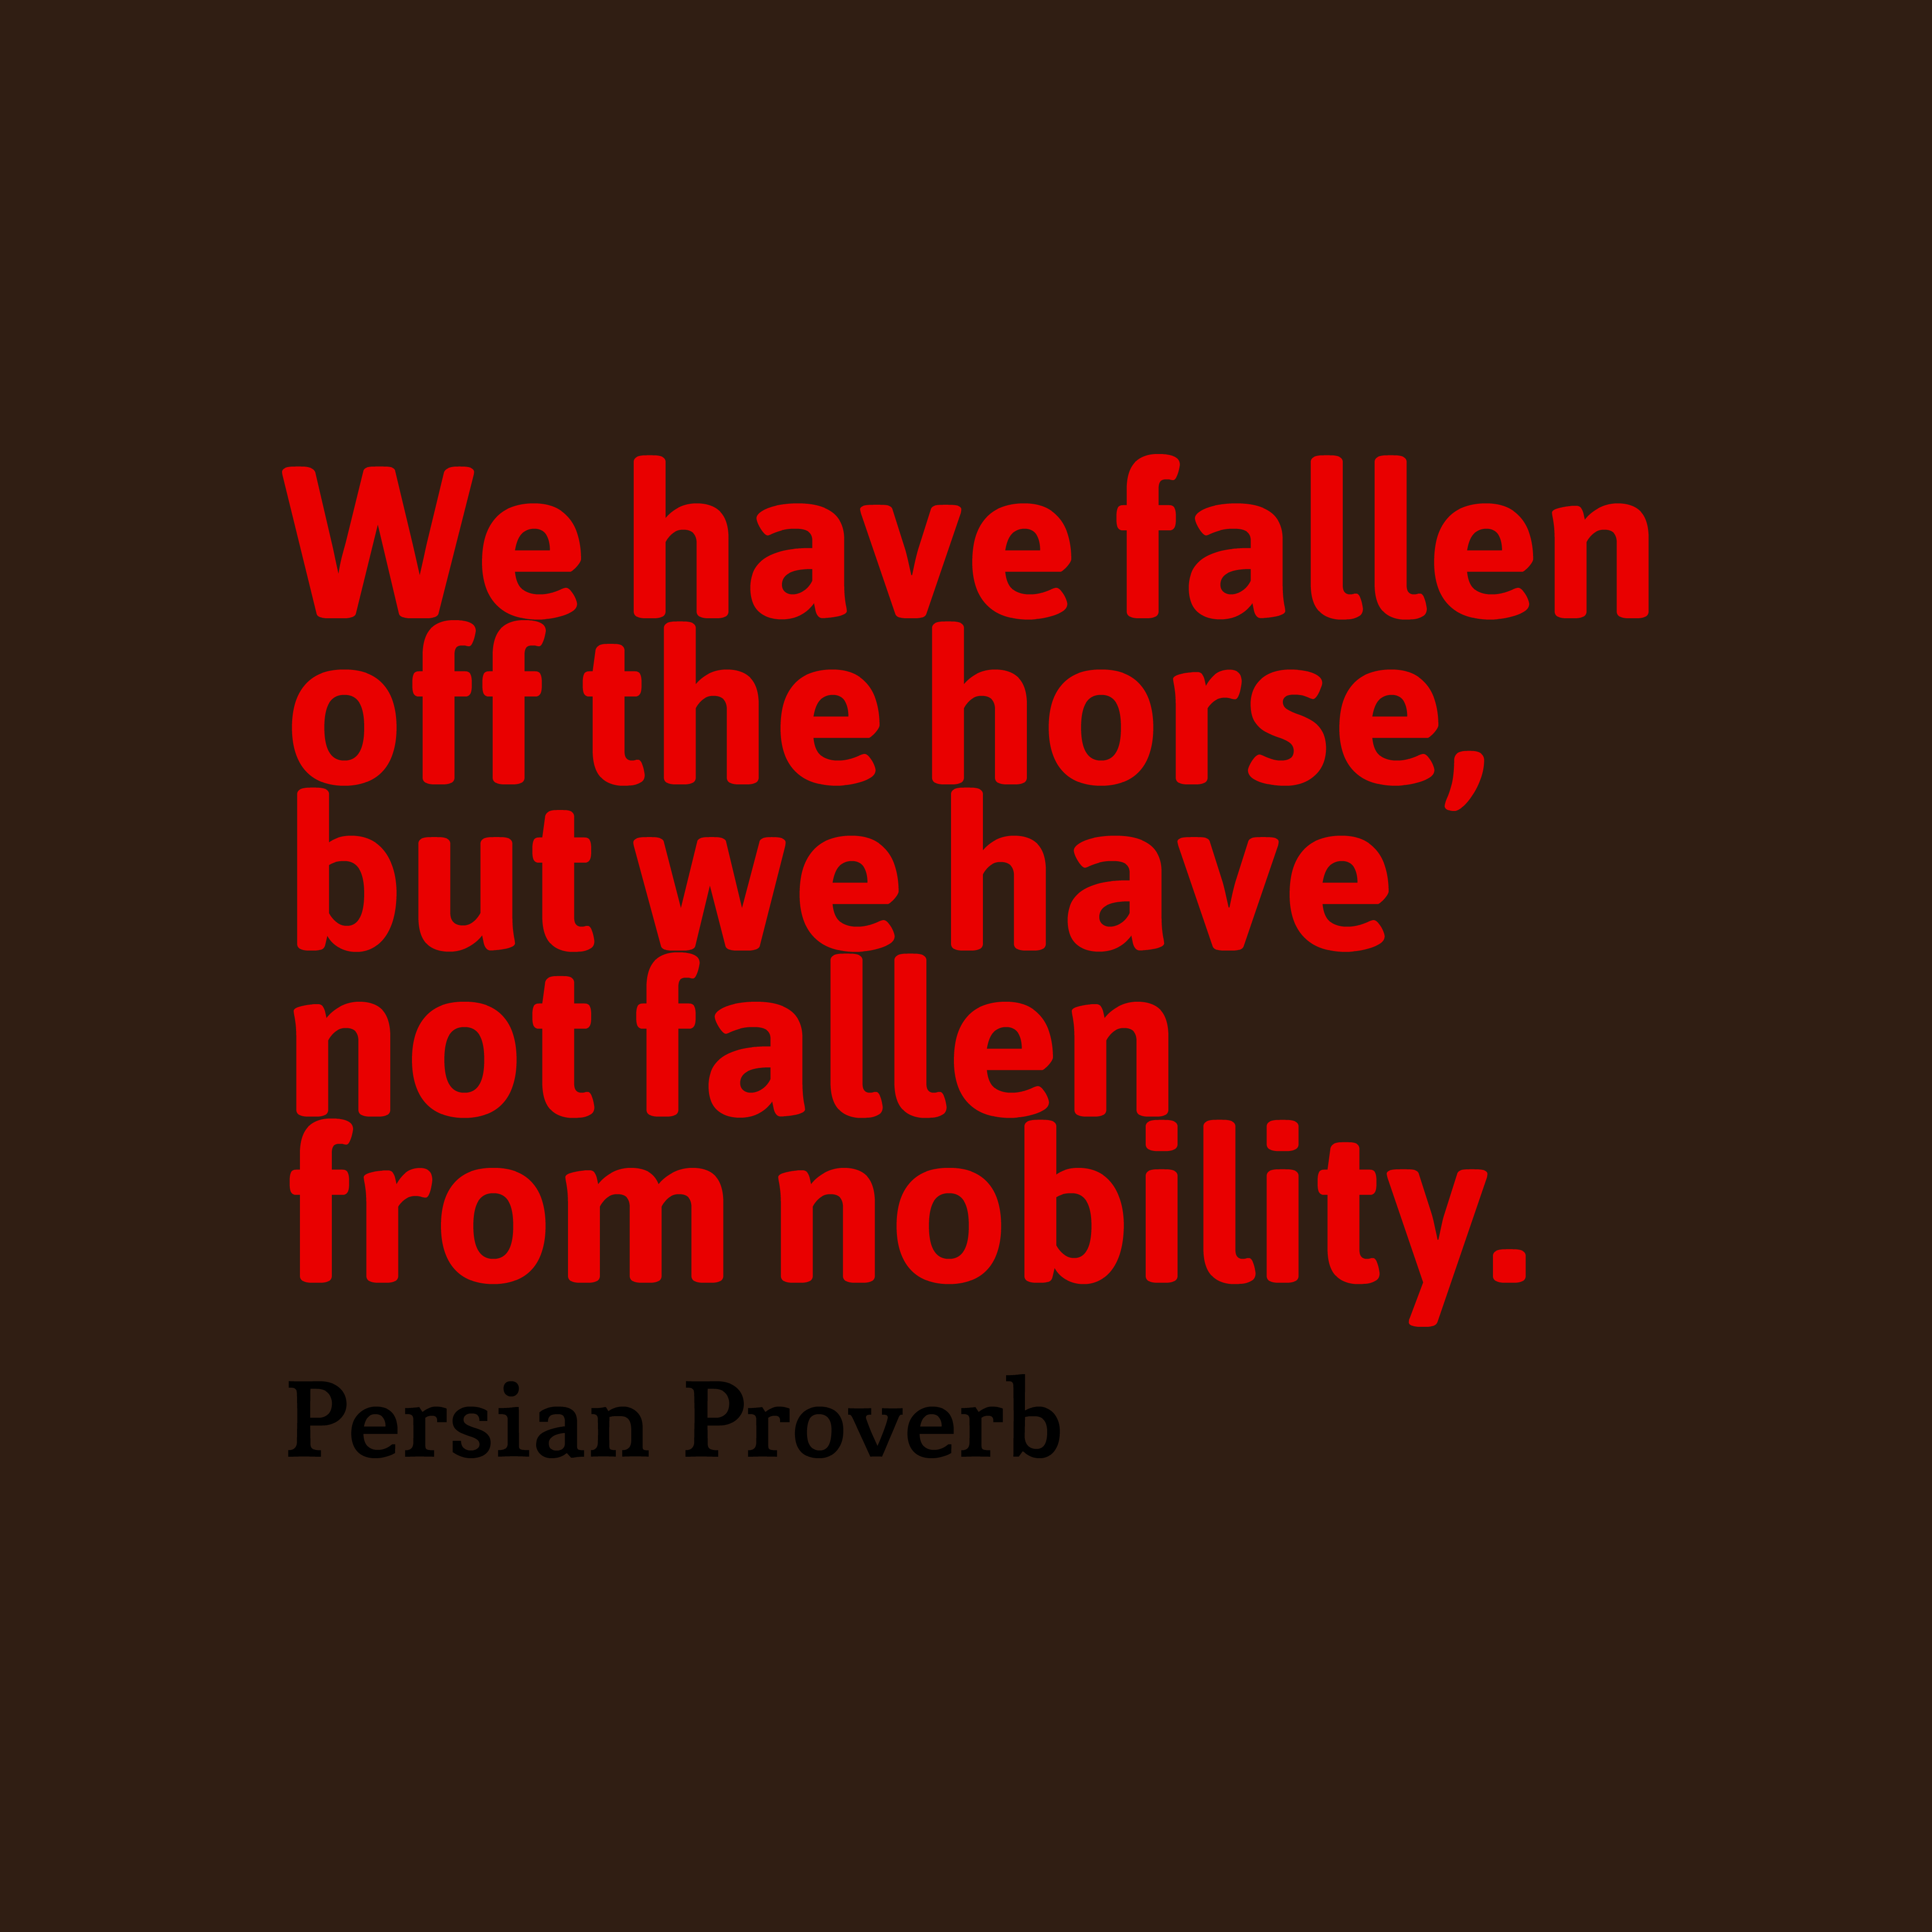 Quotes image of We have fallen off the horse, but we have not fallen from nobility.